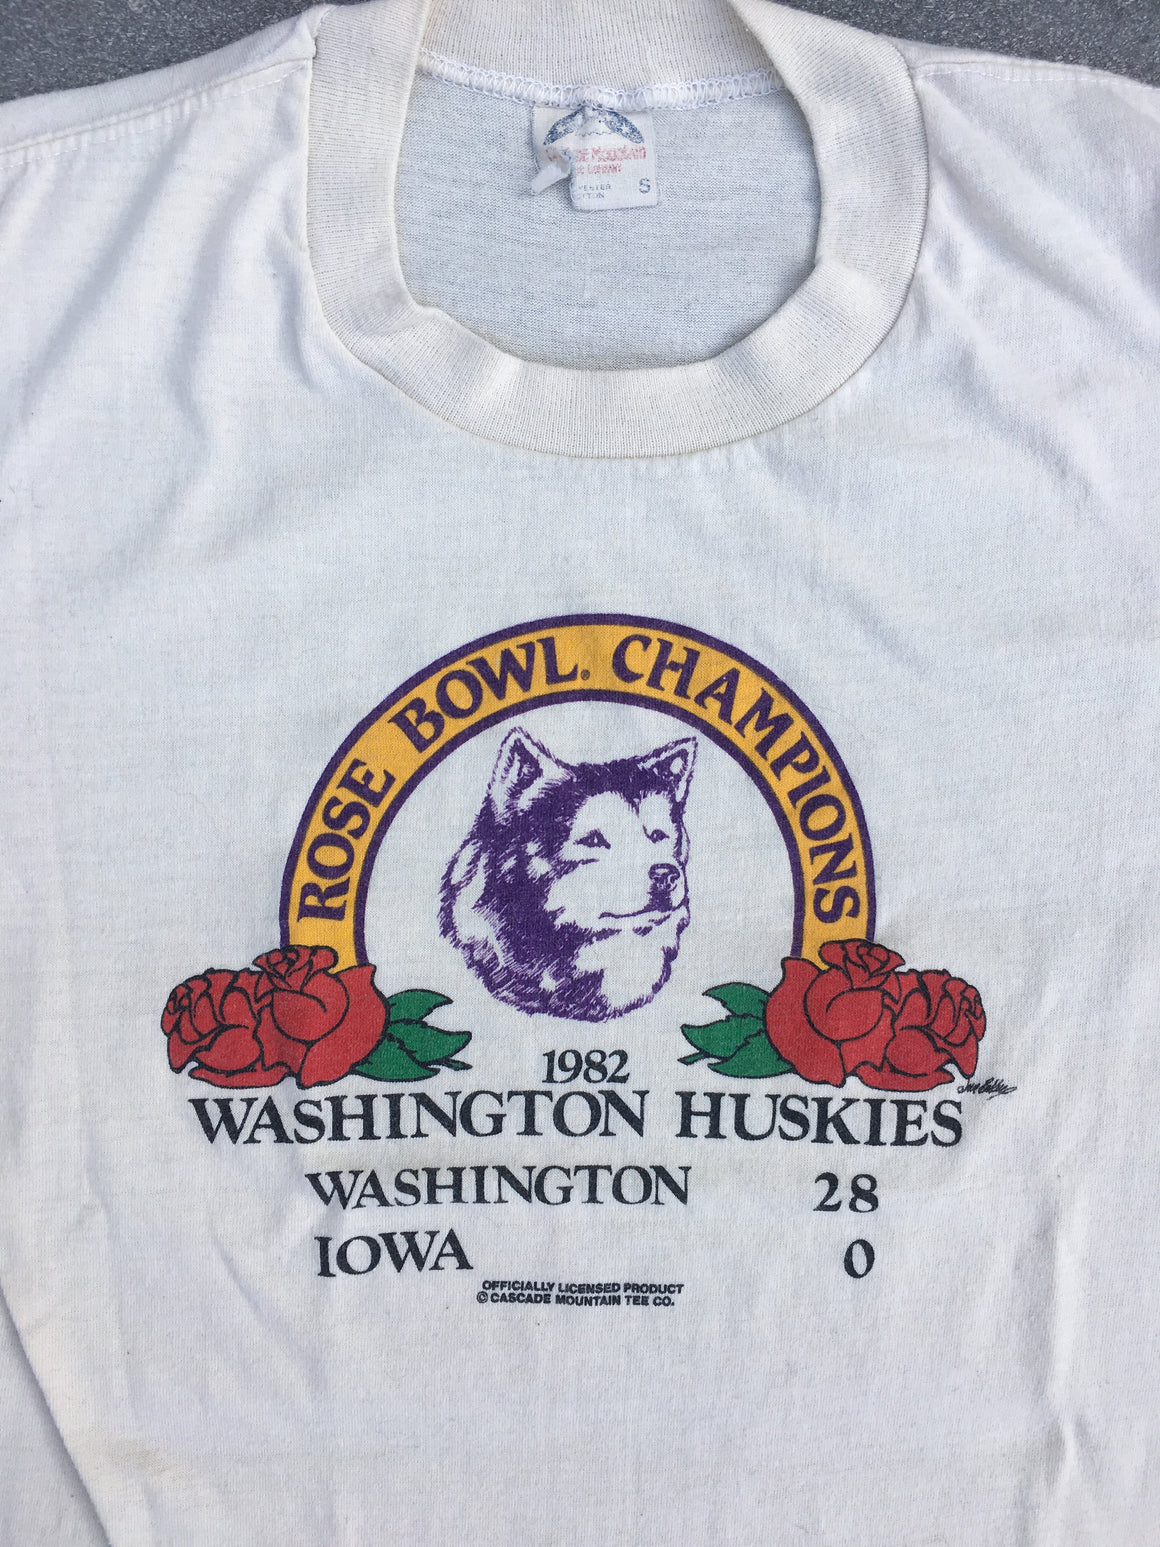 Washington Huskies 1982 Rose Bowl shirt - S